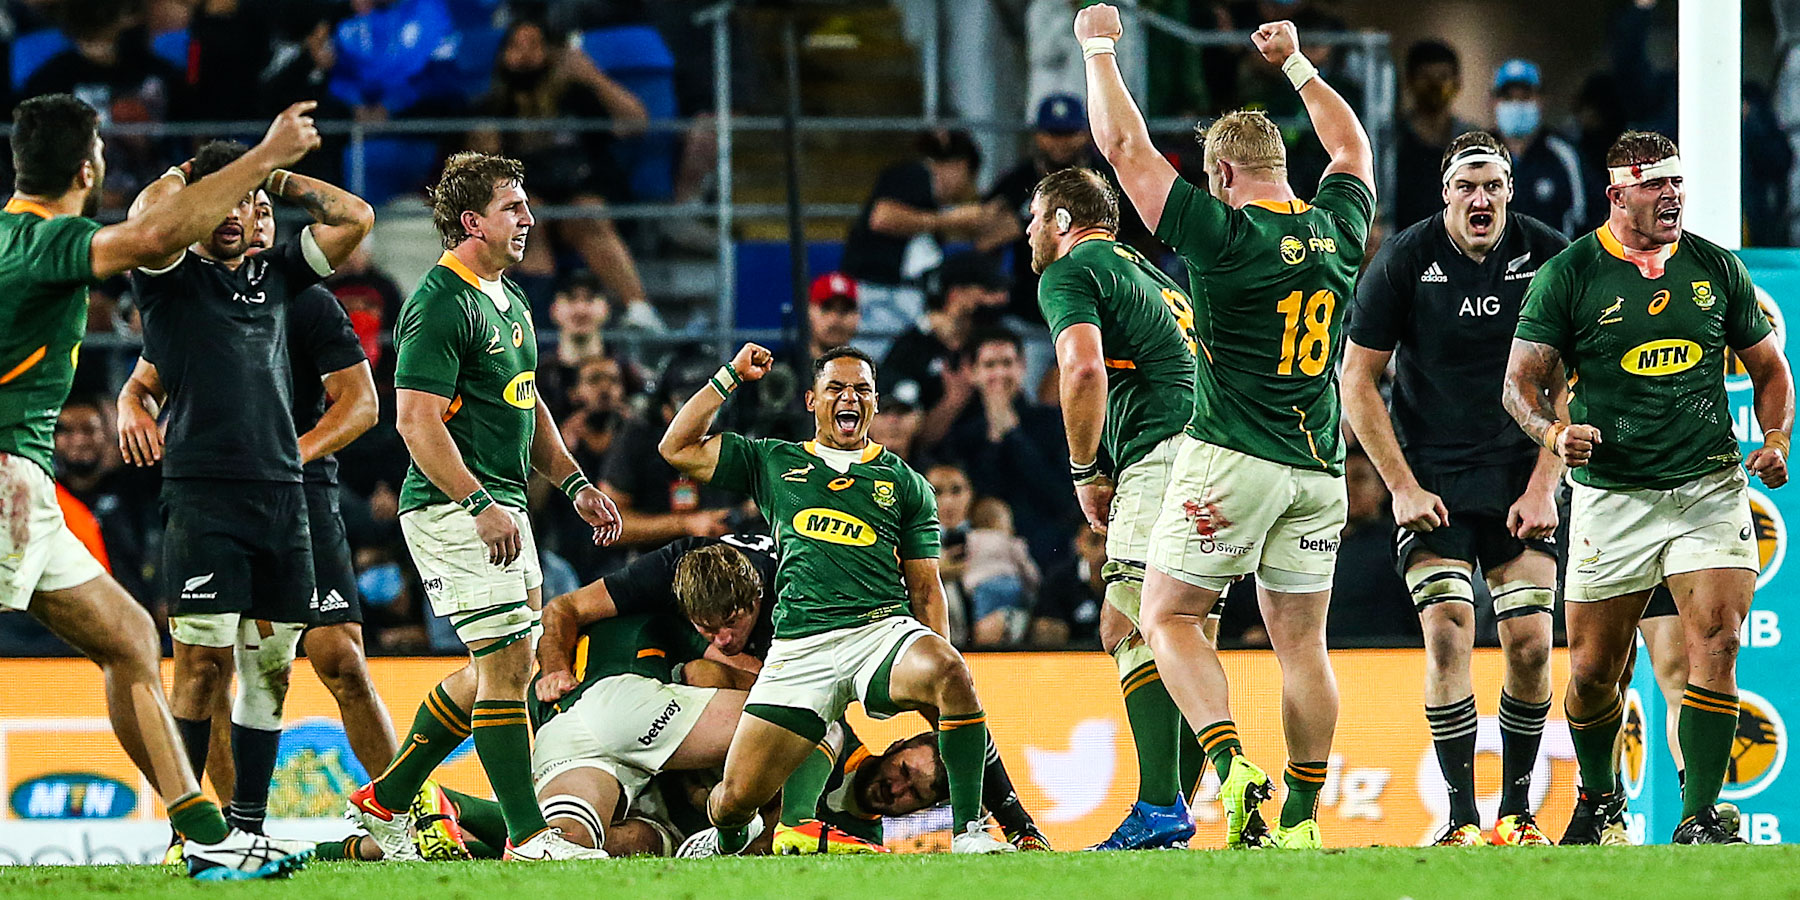 Three things to consider during brief Bok break from action